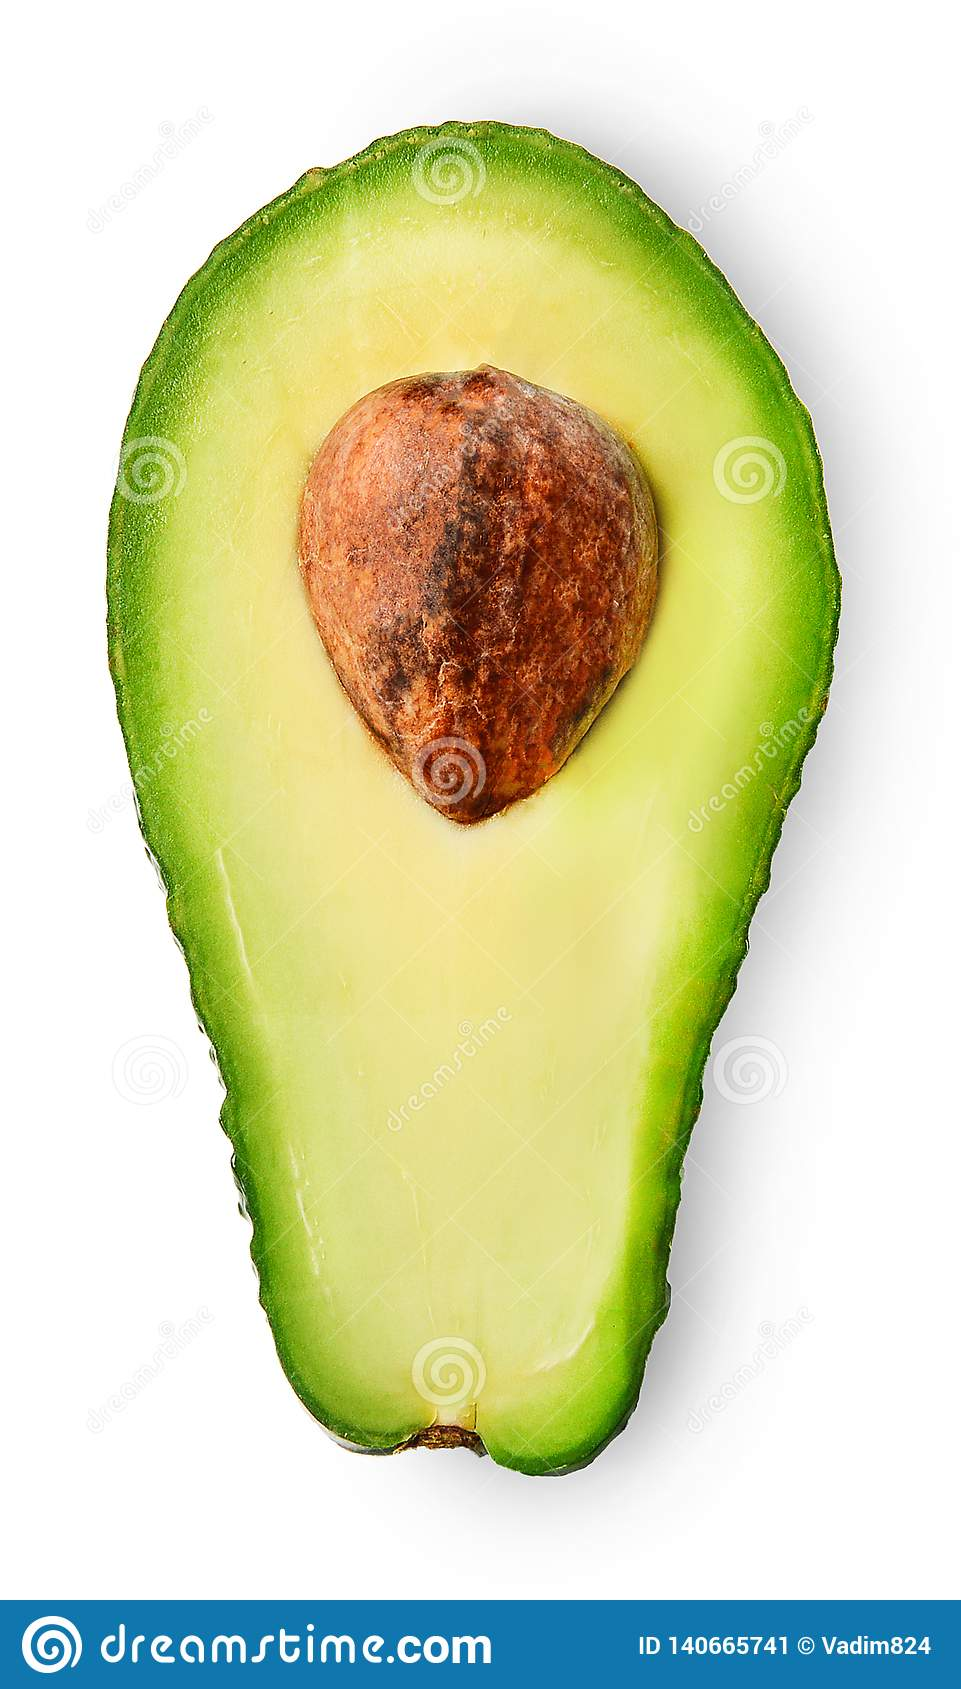 Avocado sliced in half on white isolated background. Close-up.